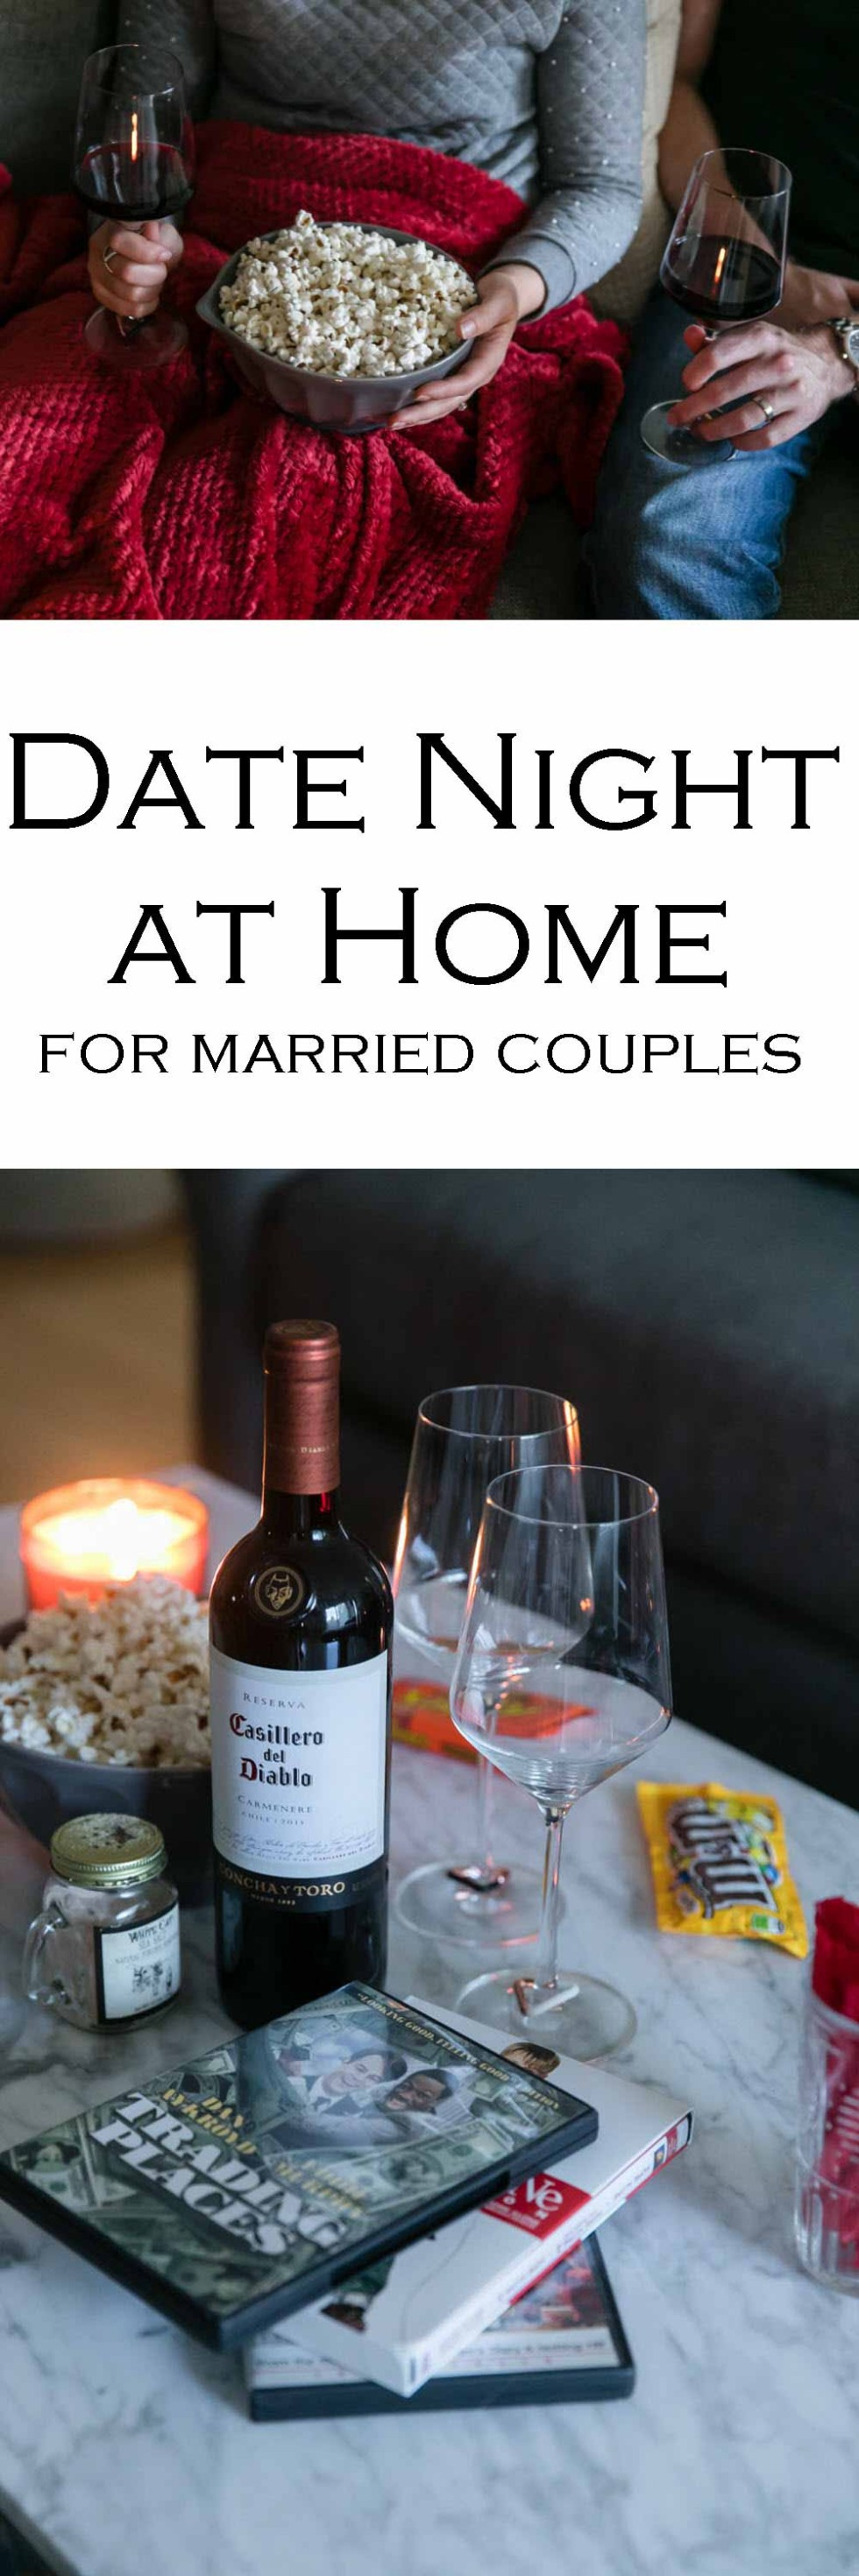 Date Night at Home - Movie Night for Married Couples #datenight #datenightideas #movies #movienight #marriage #love #romance